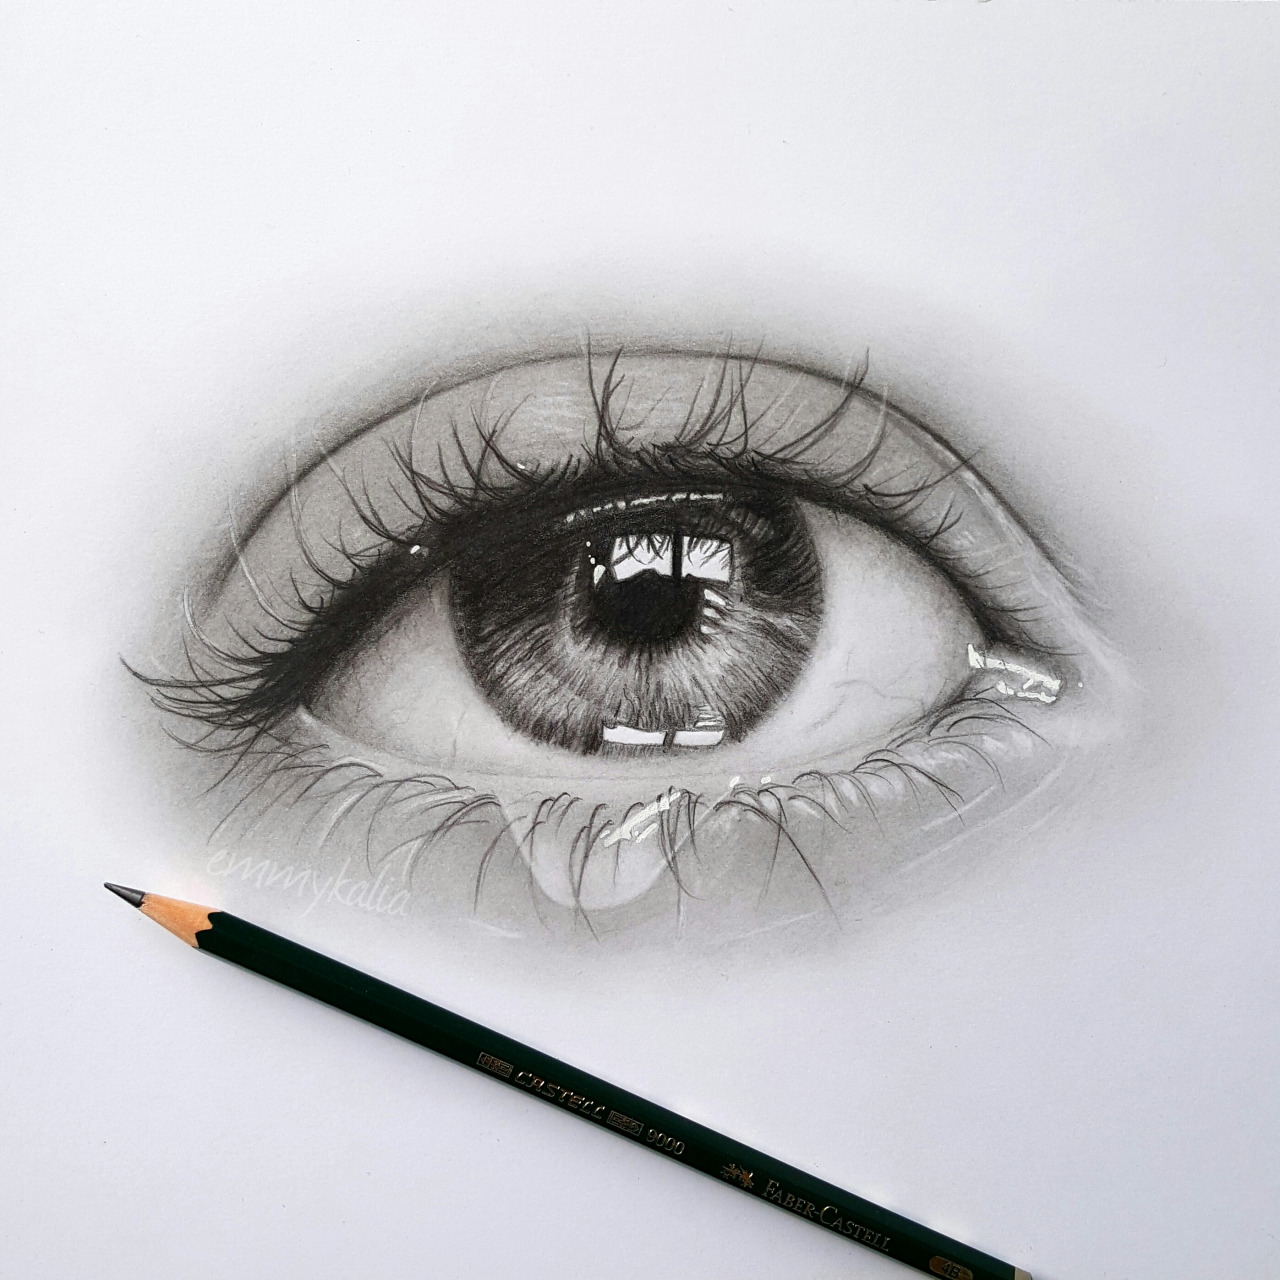 Drawn eyeball faber castell A  graphite Drawing a